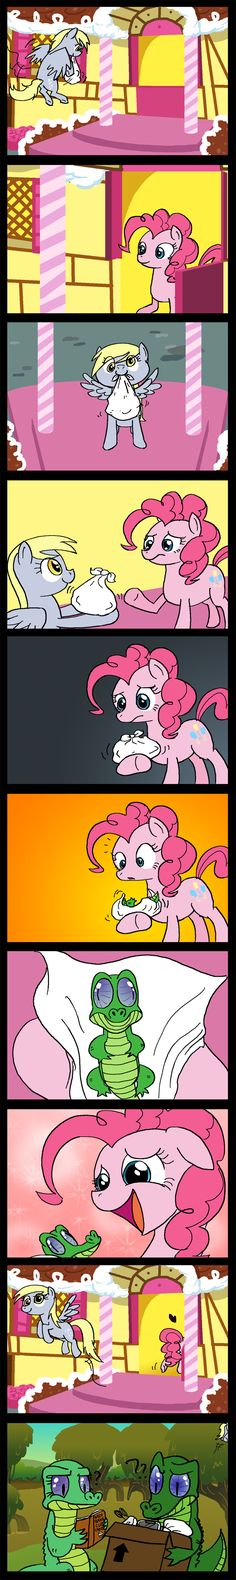 funny My Little Pony comic